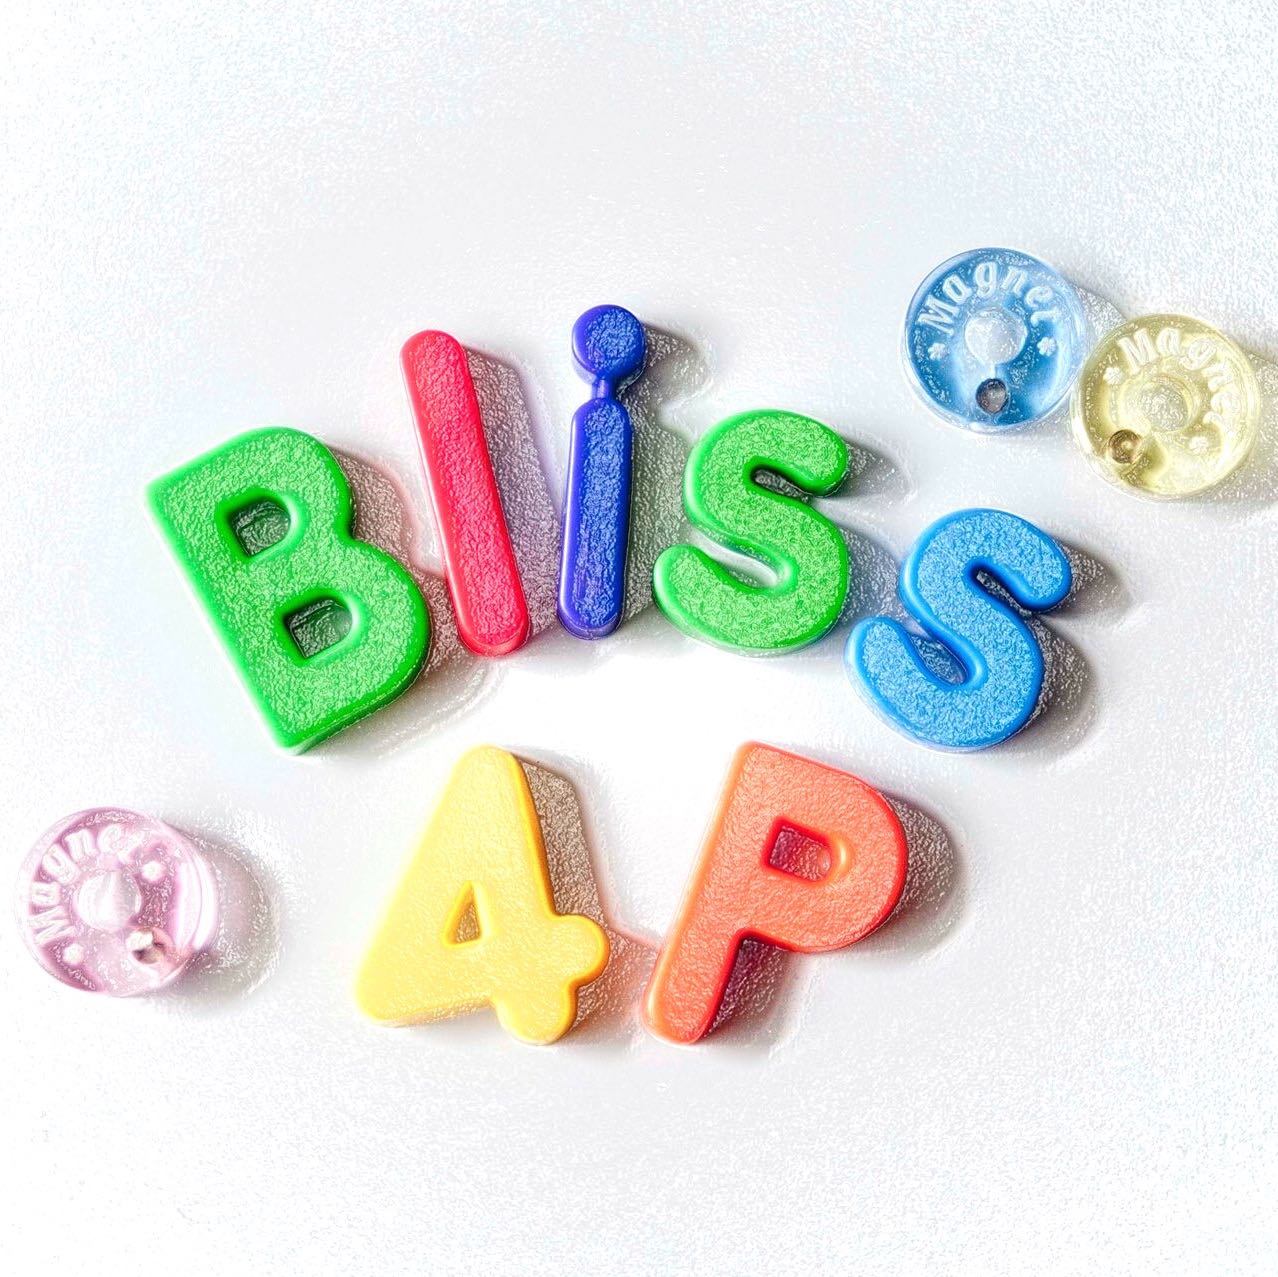 bliss4p